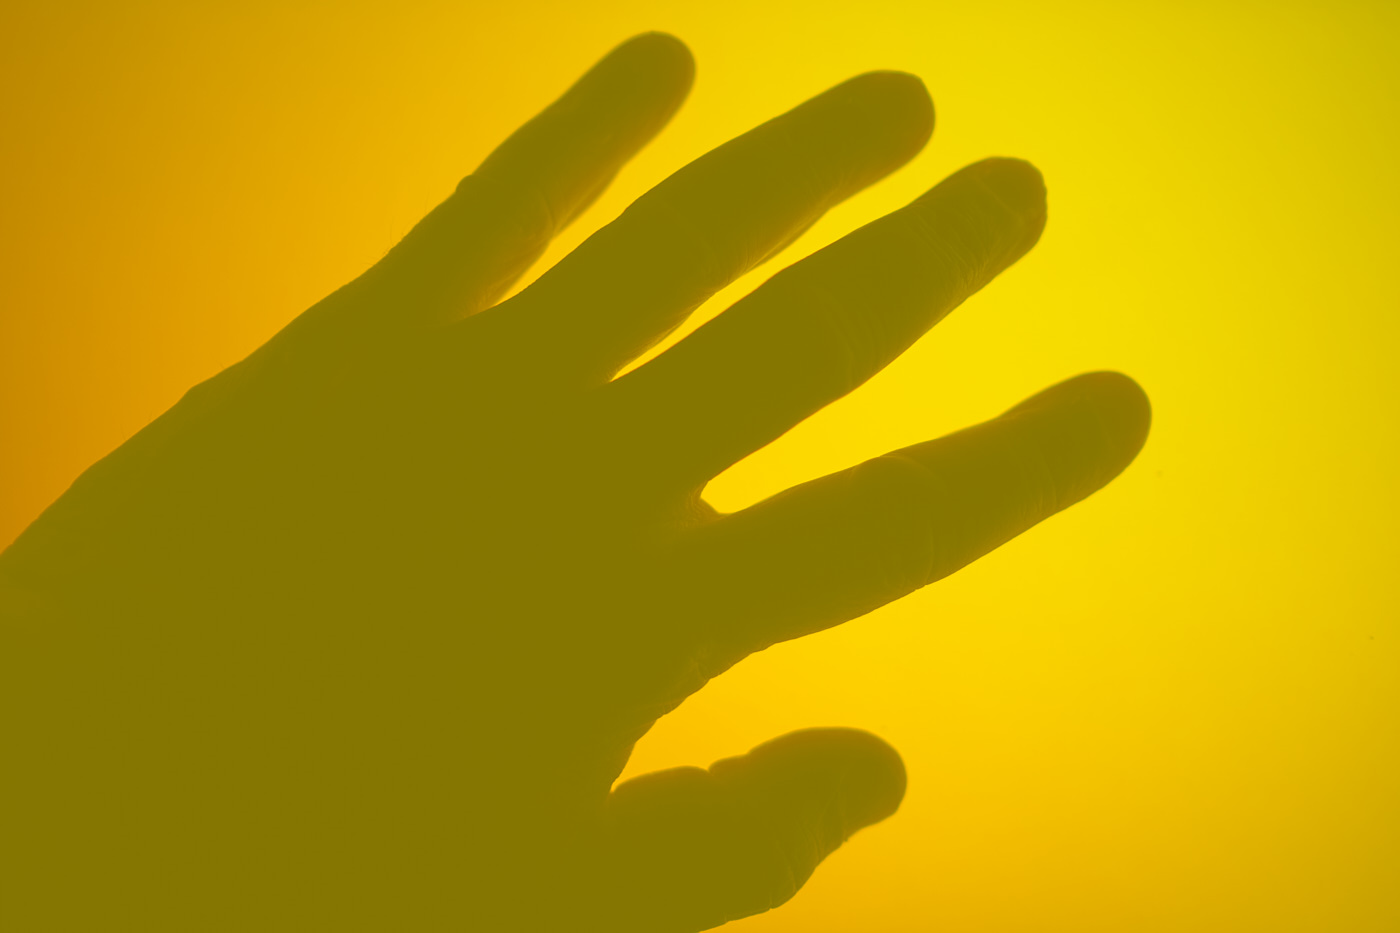 hand silhouette on yellow orange background